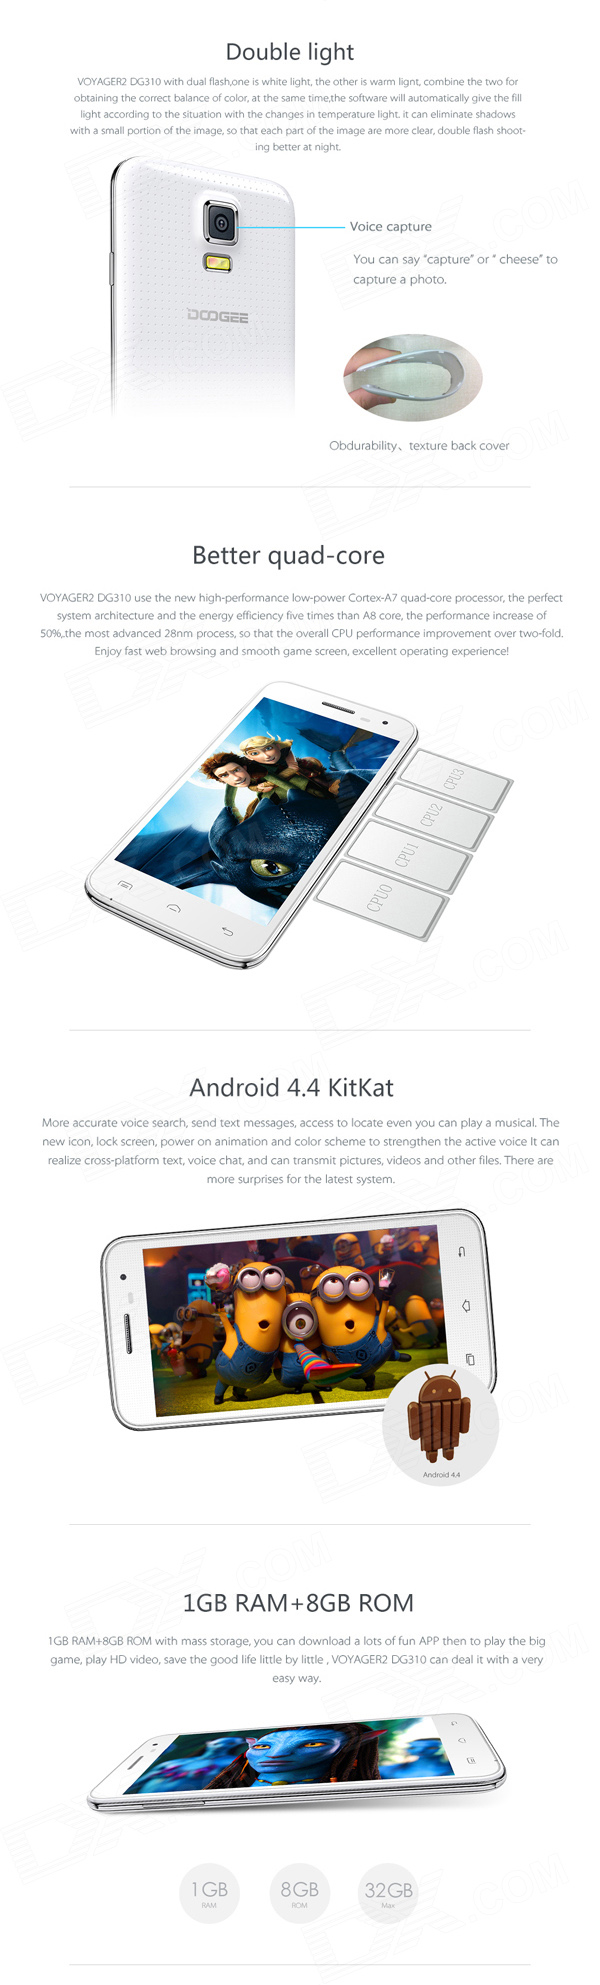 "DOOGEE VOYAGER2 DG310 Android 4.4 Mobile Phone w/ Quad-Core 5.0"" IPS, 8GB ROM, OTG, GPS, OTA - Free Shipping - DealExtreme"